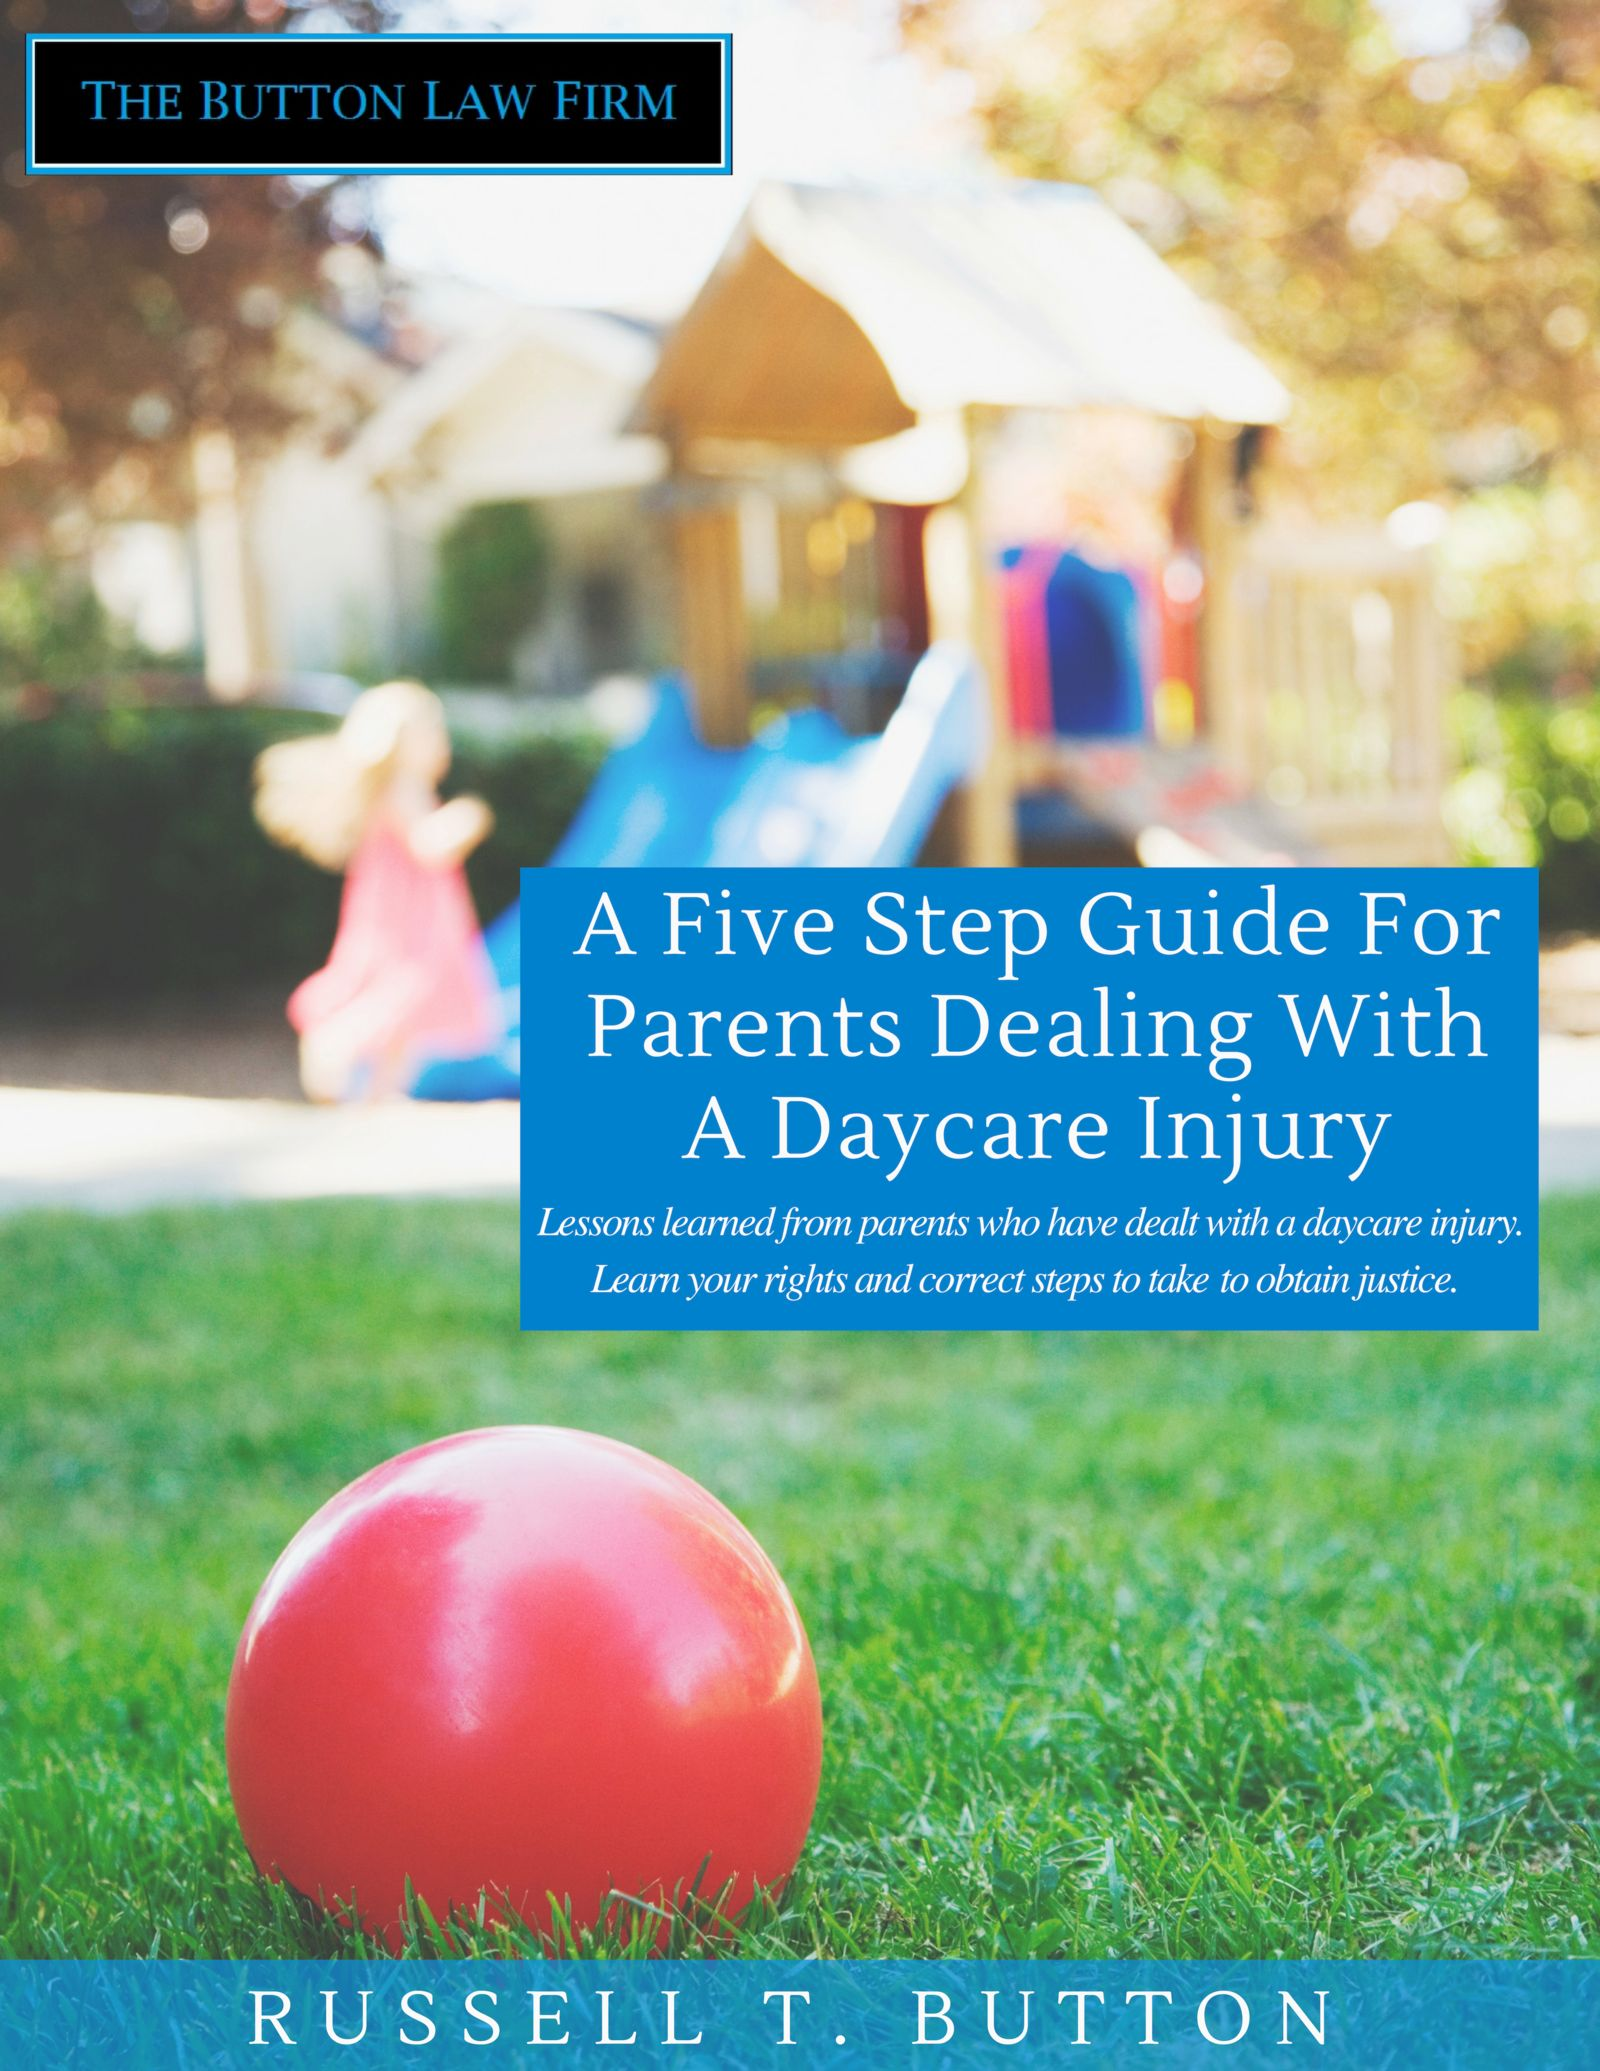 Parents' guide to daycare injuries in Texas